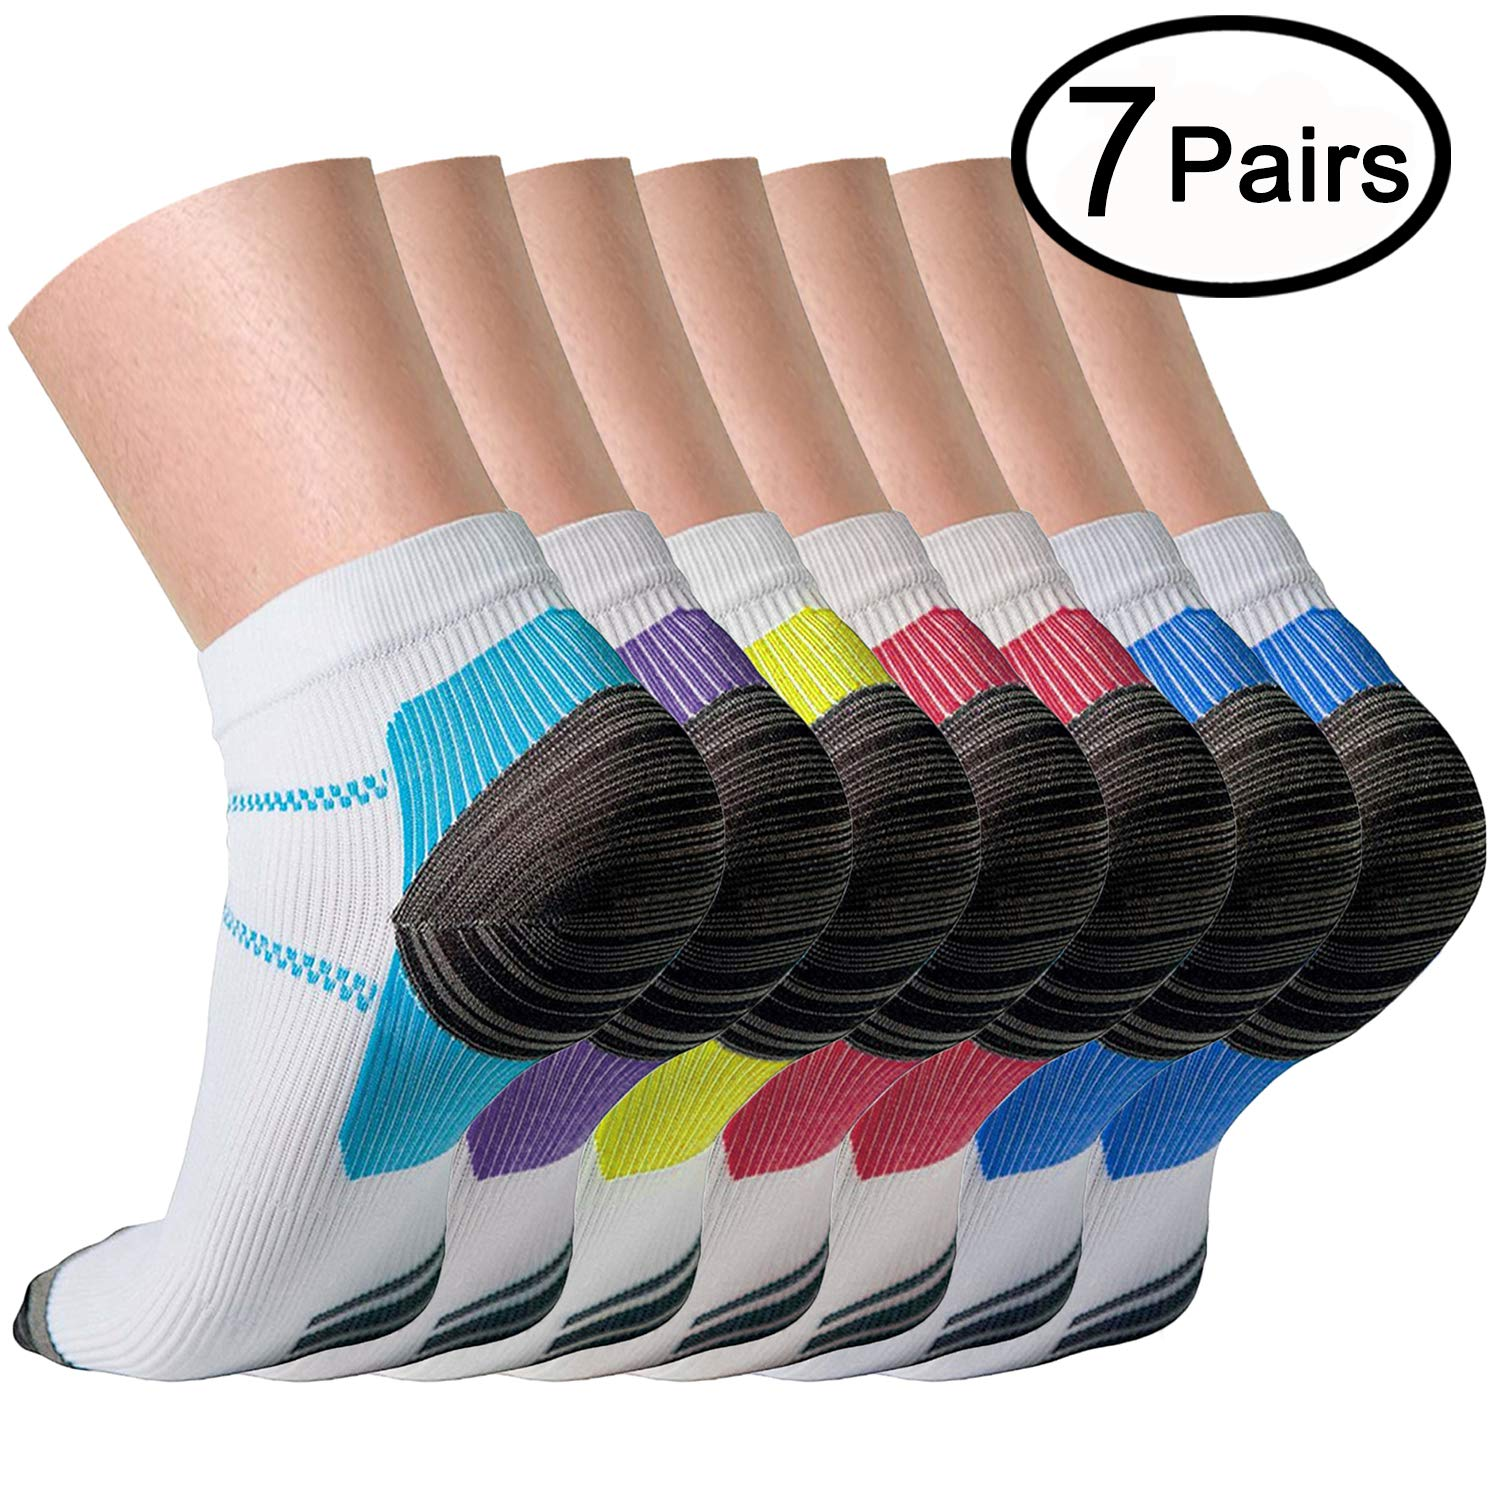 Compression Socks (7 Pairs) for Women and Men Sport Plantar Fasciitis Arch Support Low Cut Running Gym Compression Foot Socks/Foot (Small/Medium)